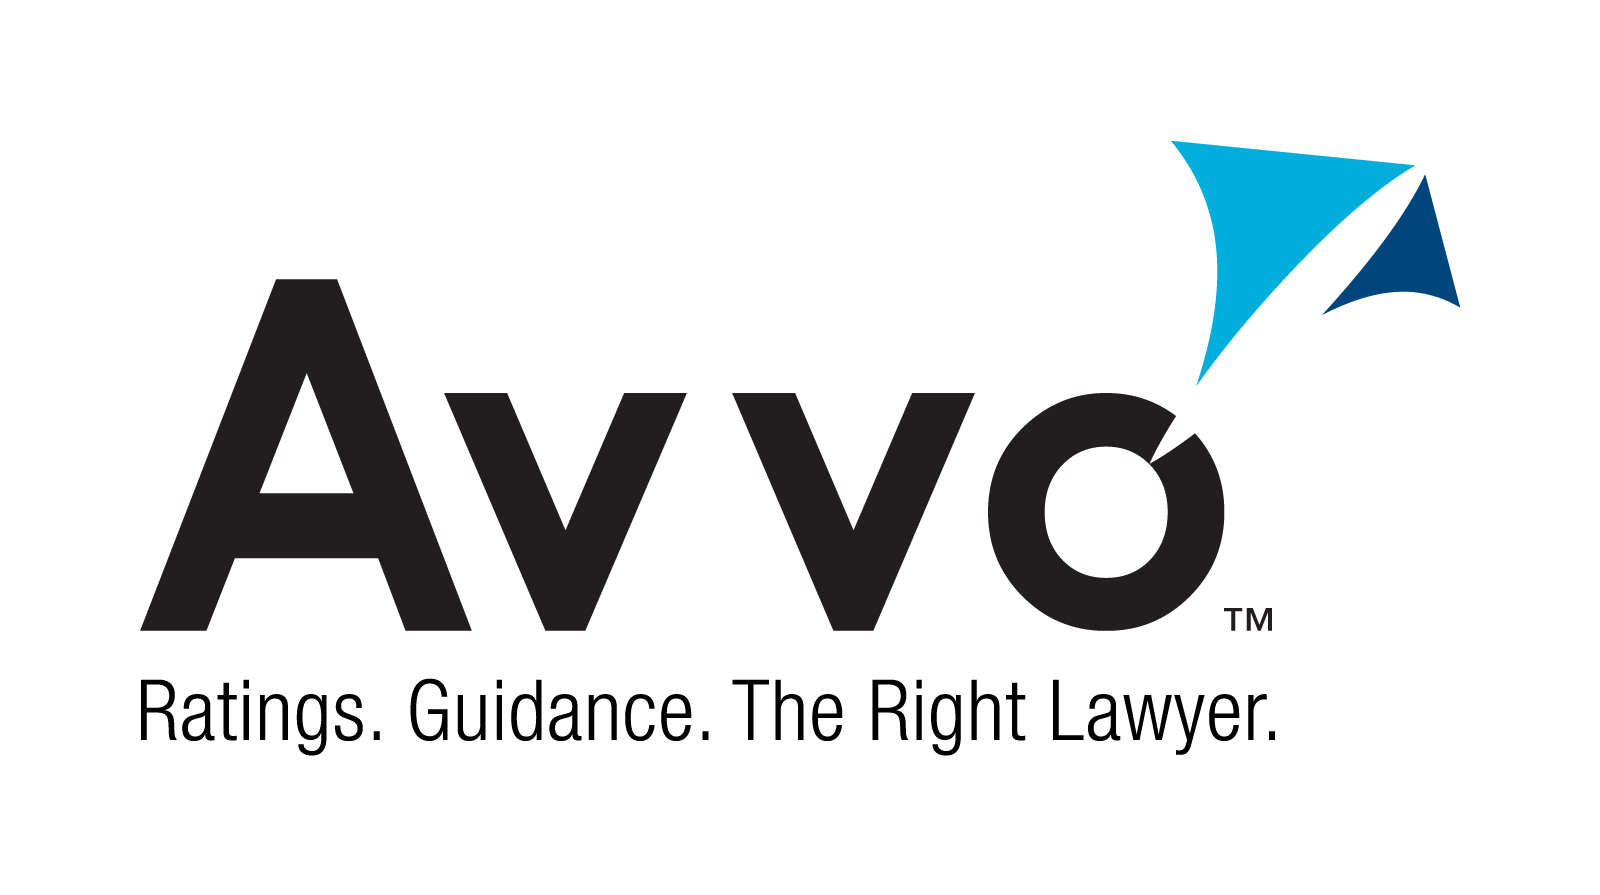 Avvo is an online legal service tool for finding and rating attorneys